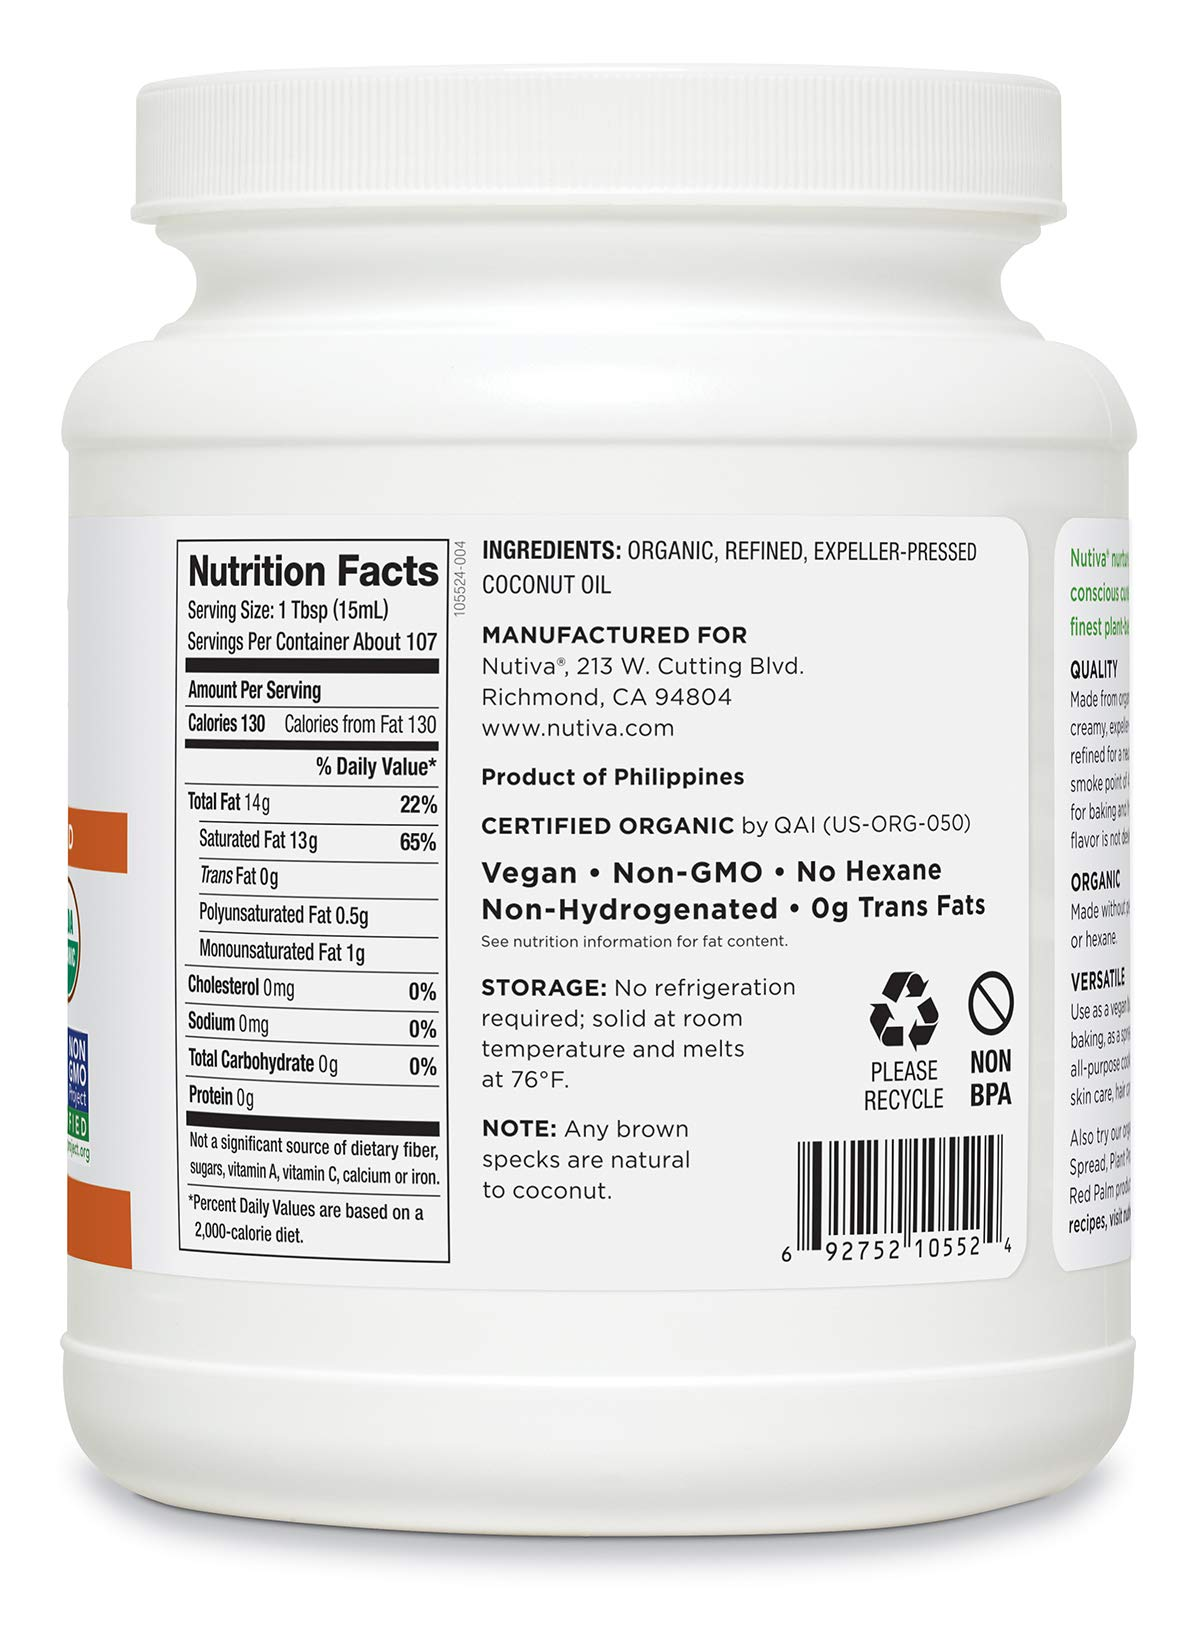 Nutiva Organic, Neutral Tasting, Steam Refined Coconut Oil from non-GMO, Sustainably Farmed Coconuts, 54 Fluid Ounce,Pack of 1